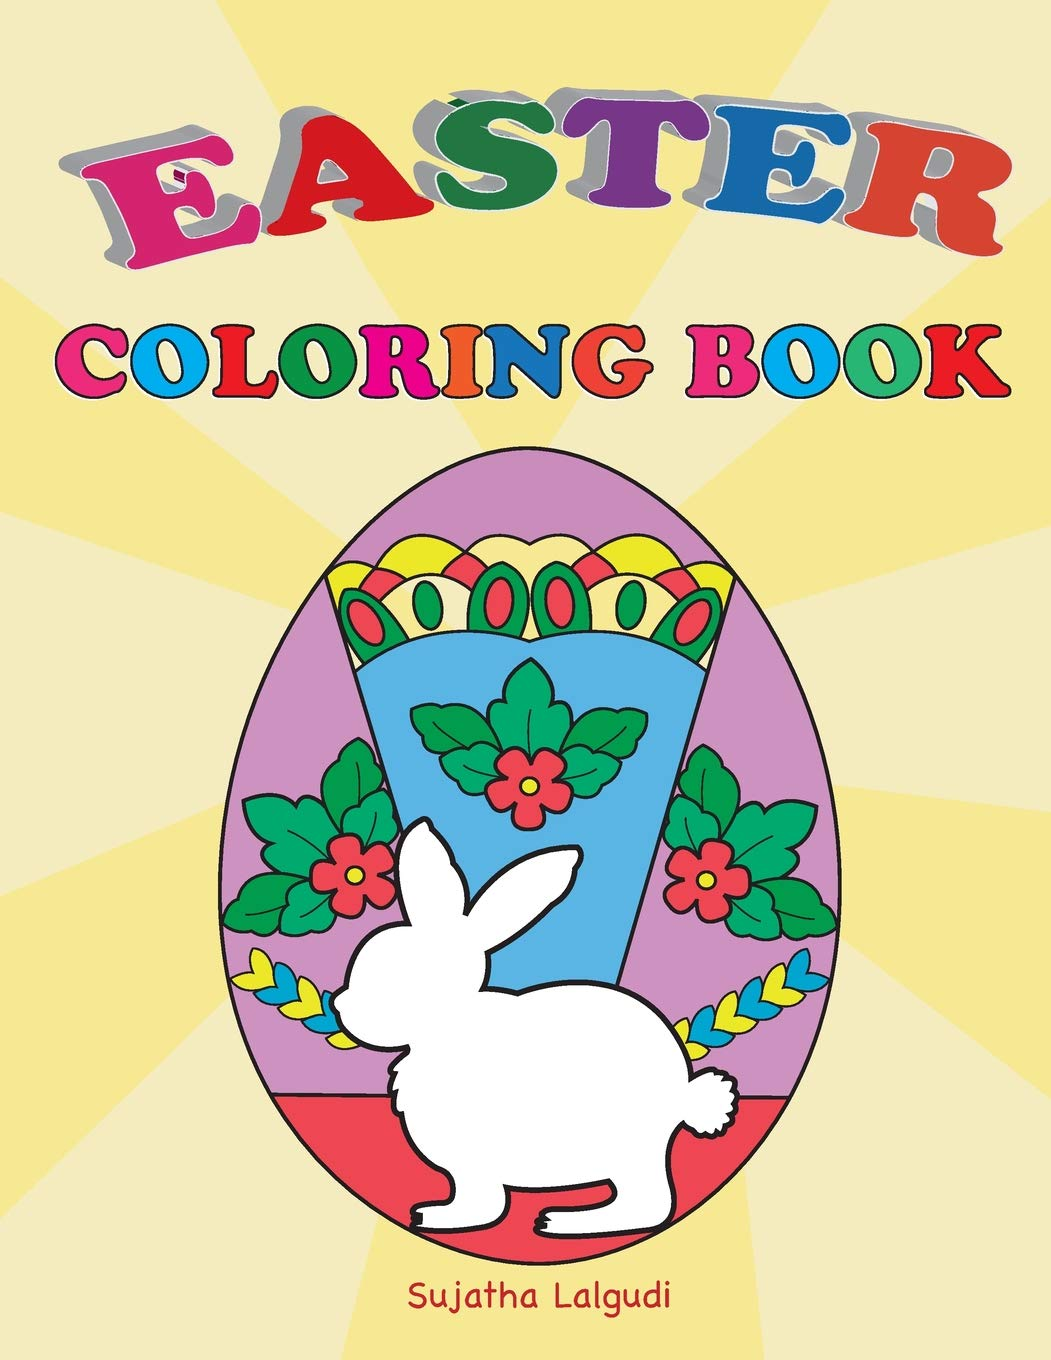 Easter Coloring Book Easter Gift For Kids Happy Easter Kids Coloring Book With Fun Easy Festive Coloring Pages Easter Bunny Children S Coloring Books Volume 30 Lalgudi Sujatha Lalgudi Sujatha 9781986039888 Amazon Com Books